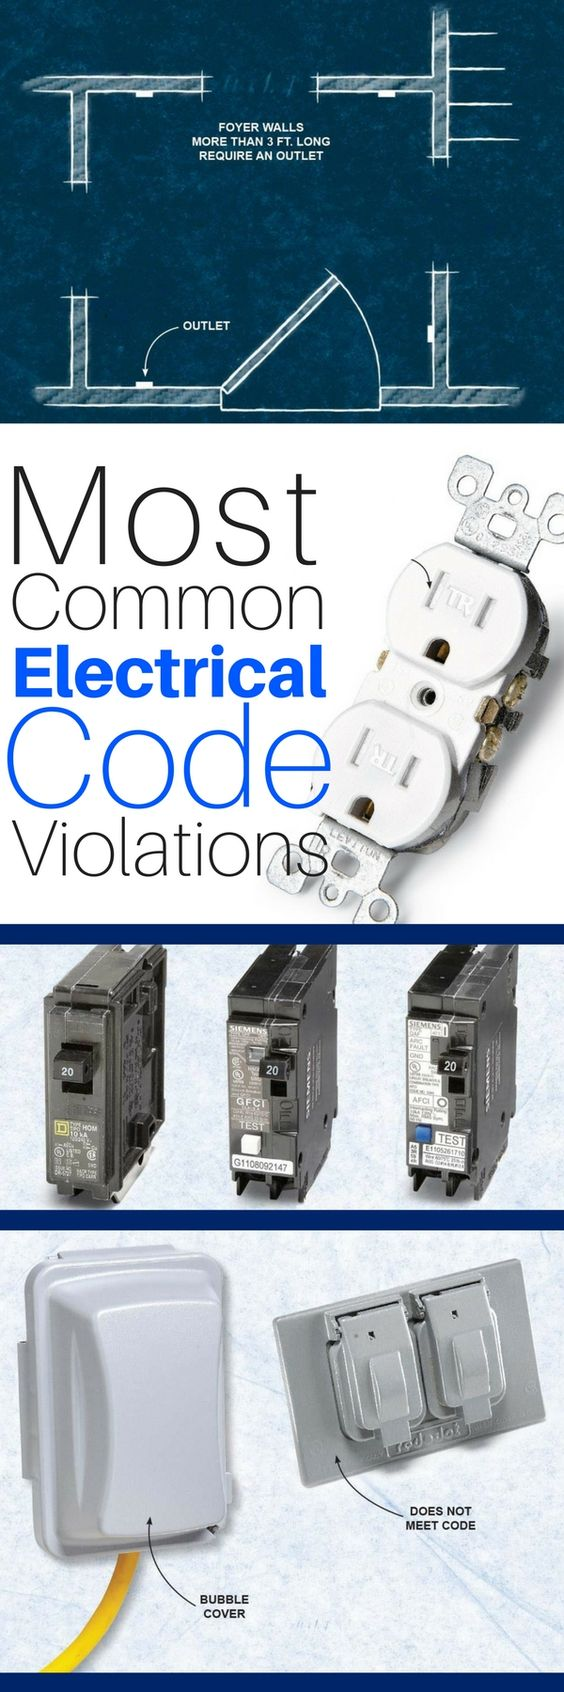 hight resolution of there are many reasons you hire a professional electrician to do the wiring for your house one of those reasons is keeping everything up to code